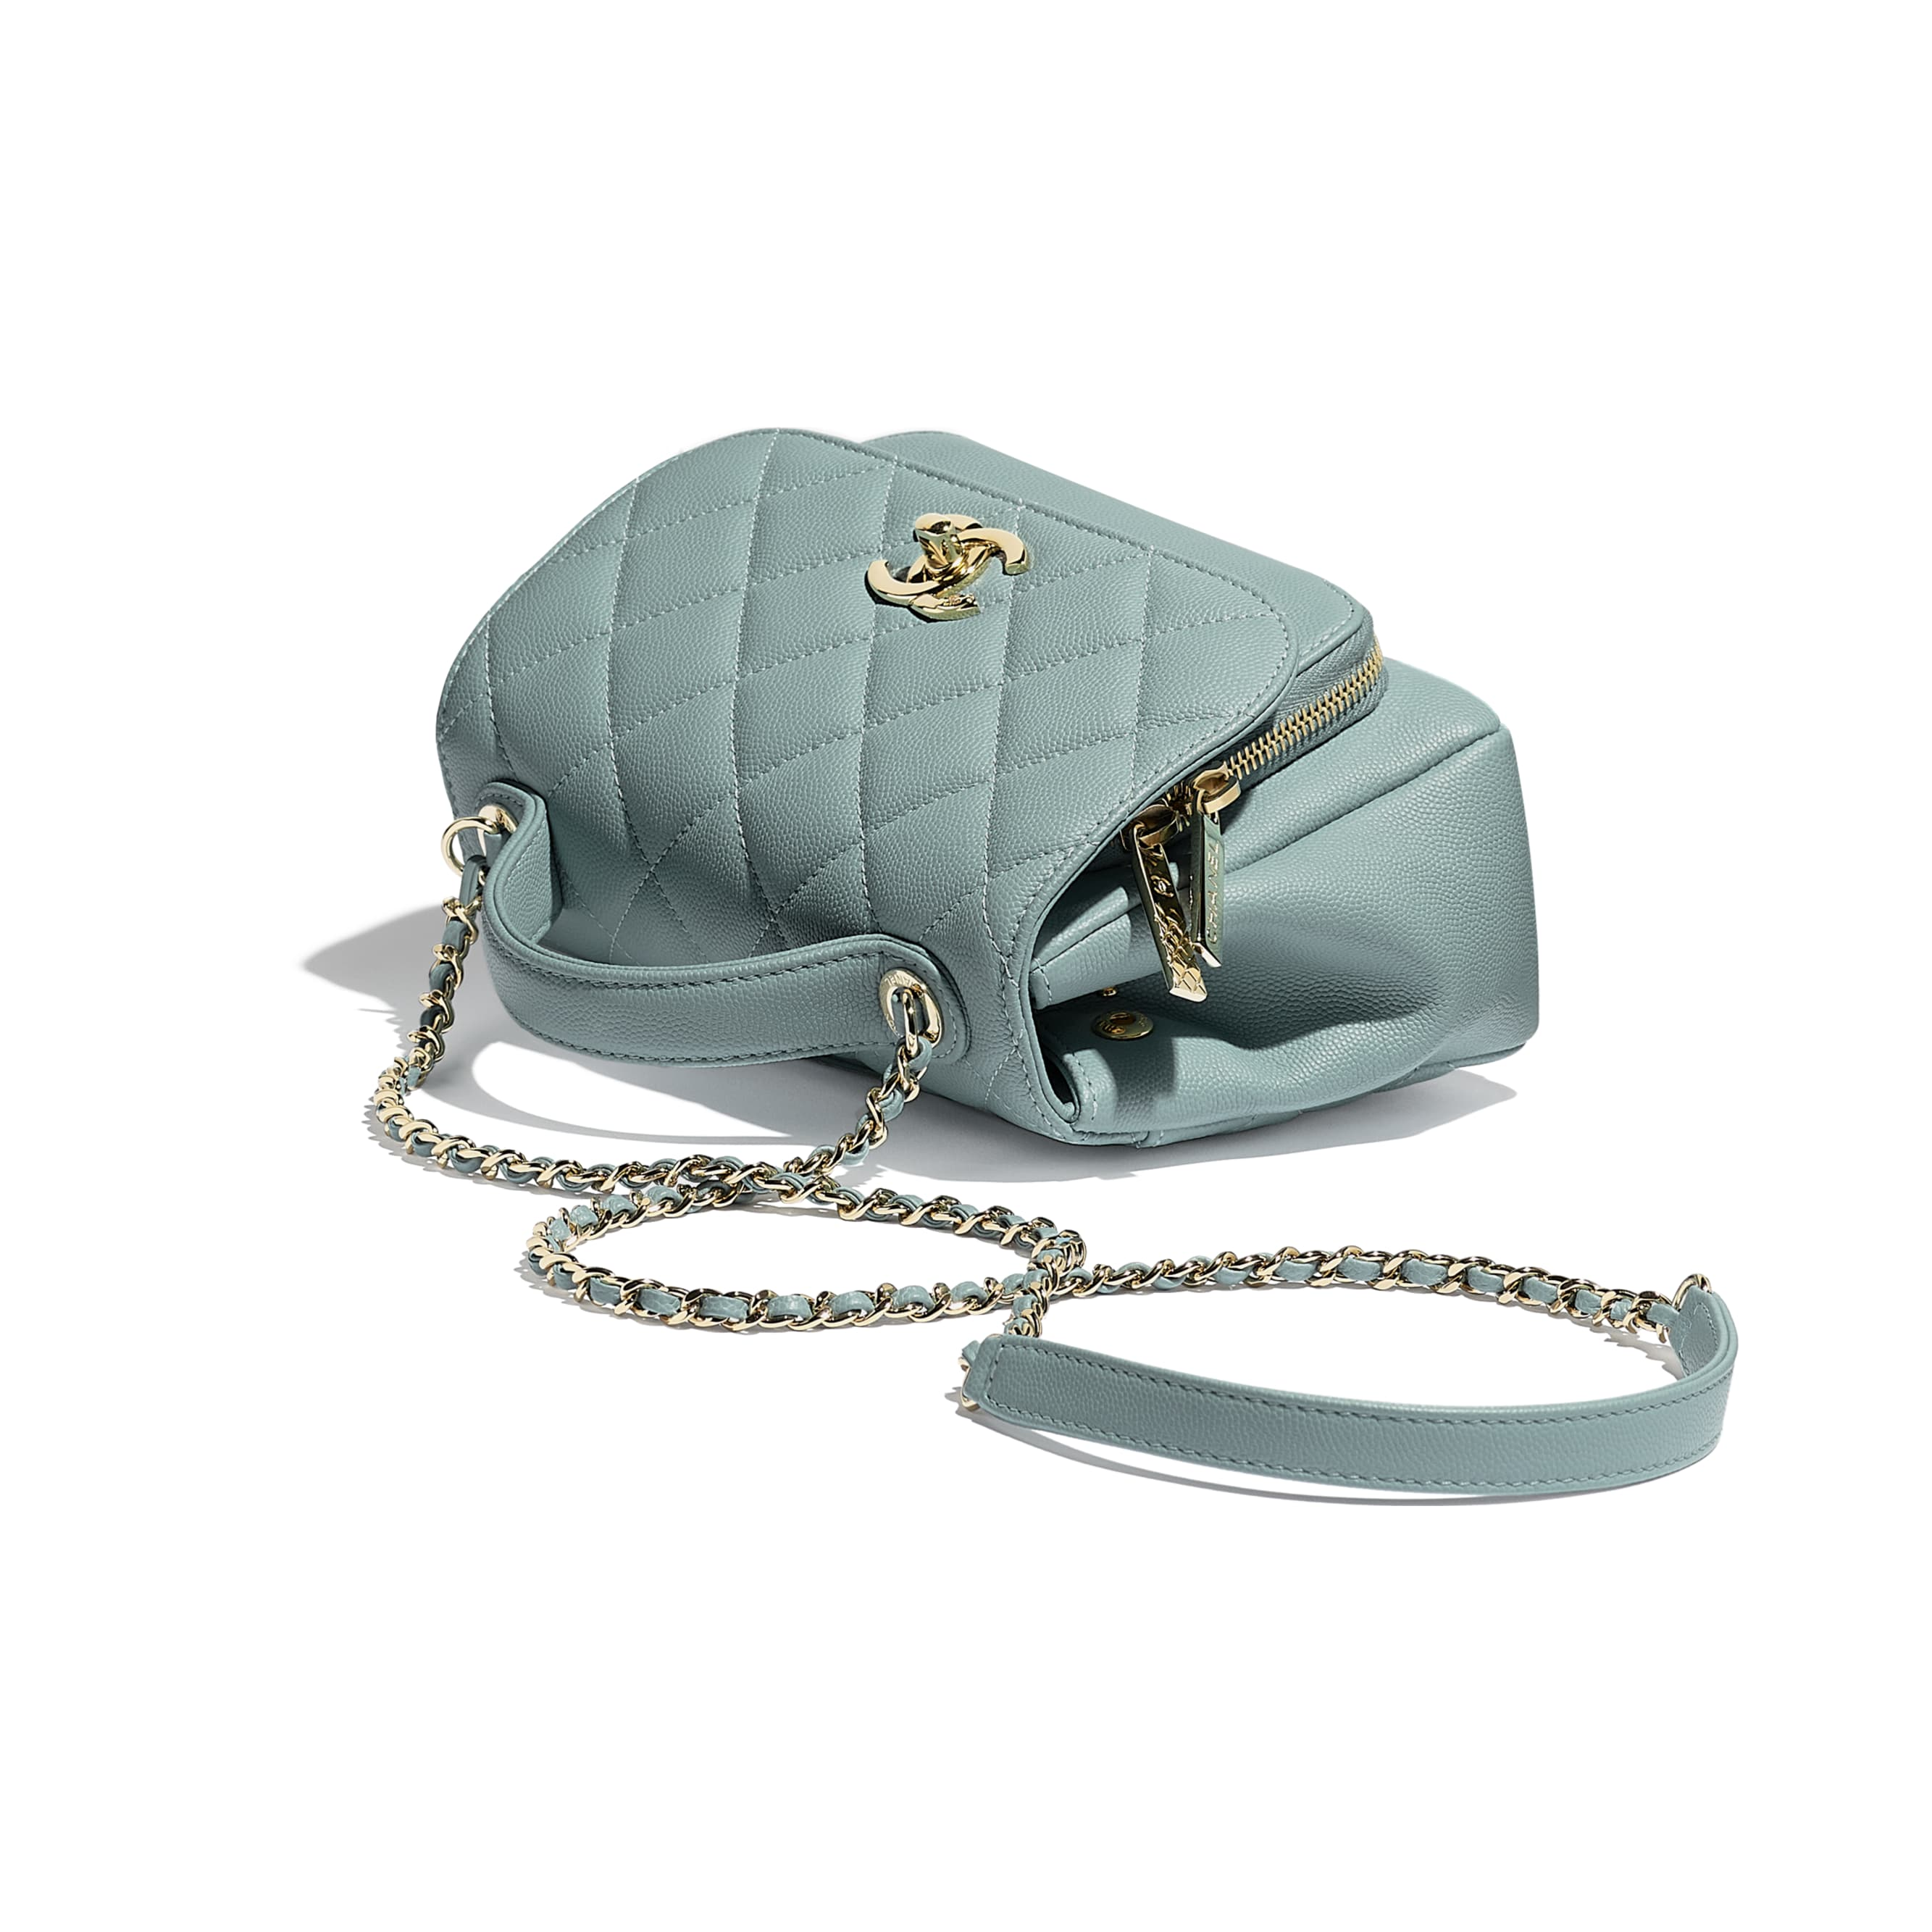 Small Flap Bag With Top Handle - Blue - Grained Calfskin & Gold-Tone Metal - Extra view - see standard sized version